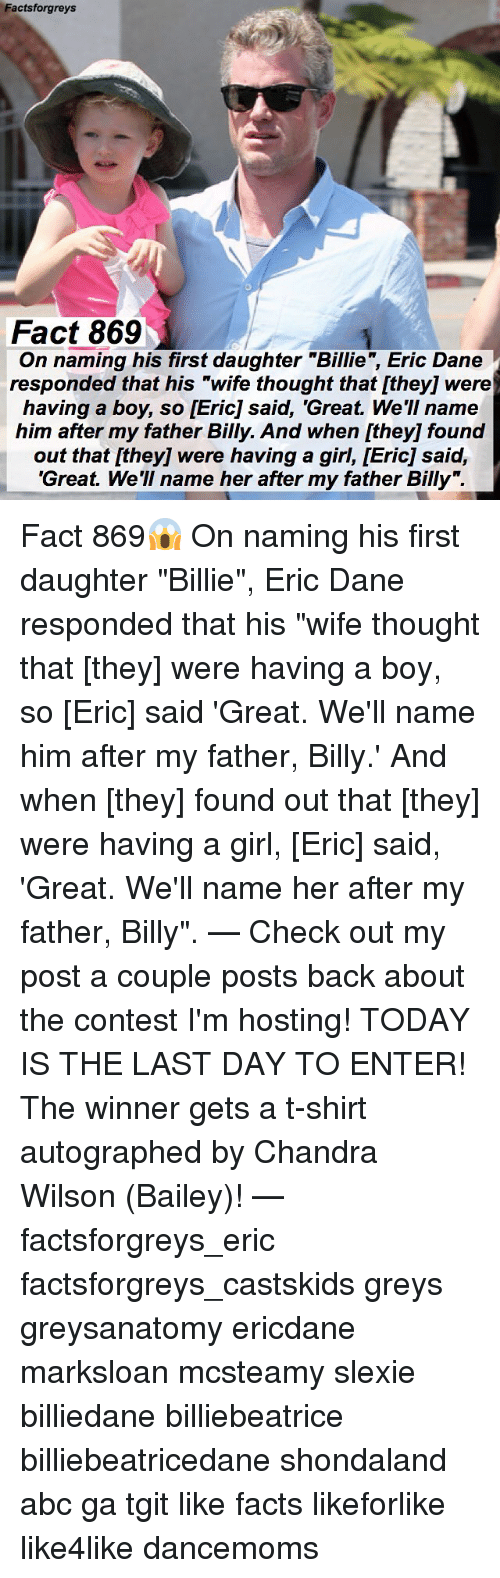 "Abc, Facts, and Memes: Factsforgreys  Fact 869  g his first daughter ""Billie, Eric Dane  On naming his first daughter ""Billie"", Eric Dane  responded that his ""wife thought that [they] were  having a boy, so [Eric] said, 'Great. We'II name  him after my father Billy. And when [they] found  out that [they] were having a girl, [Eric] said,  'Great. We'll name her after my father Billy"". Fact 869😱 On naming his first daughter ""Billie"", Eric Dane responded that his ""wife thought that [they] were having a boy, so [Eric] said 'Great. We'll name him after my father, Billy.' And when [they] found out that [they] were having a girl, [Eric] said, 'Great. We'll name her after my father, Billy"". — Check out my post a couple posts back about the contest I'm hosting! TODAY IS THE LAST DAY TO ENTER! The winner gets a t-shirt autographed by Chandra Wilson (Bailey)! — factsforgreys_eric factsforgreys_castskids greys greysanatomy ericdane marksloan mcsteamy slexie billiedane billiebeatrice billiebeatricedane shondaland abc ga tgit like facts likeforlike like4like dancemoms"